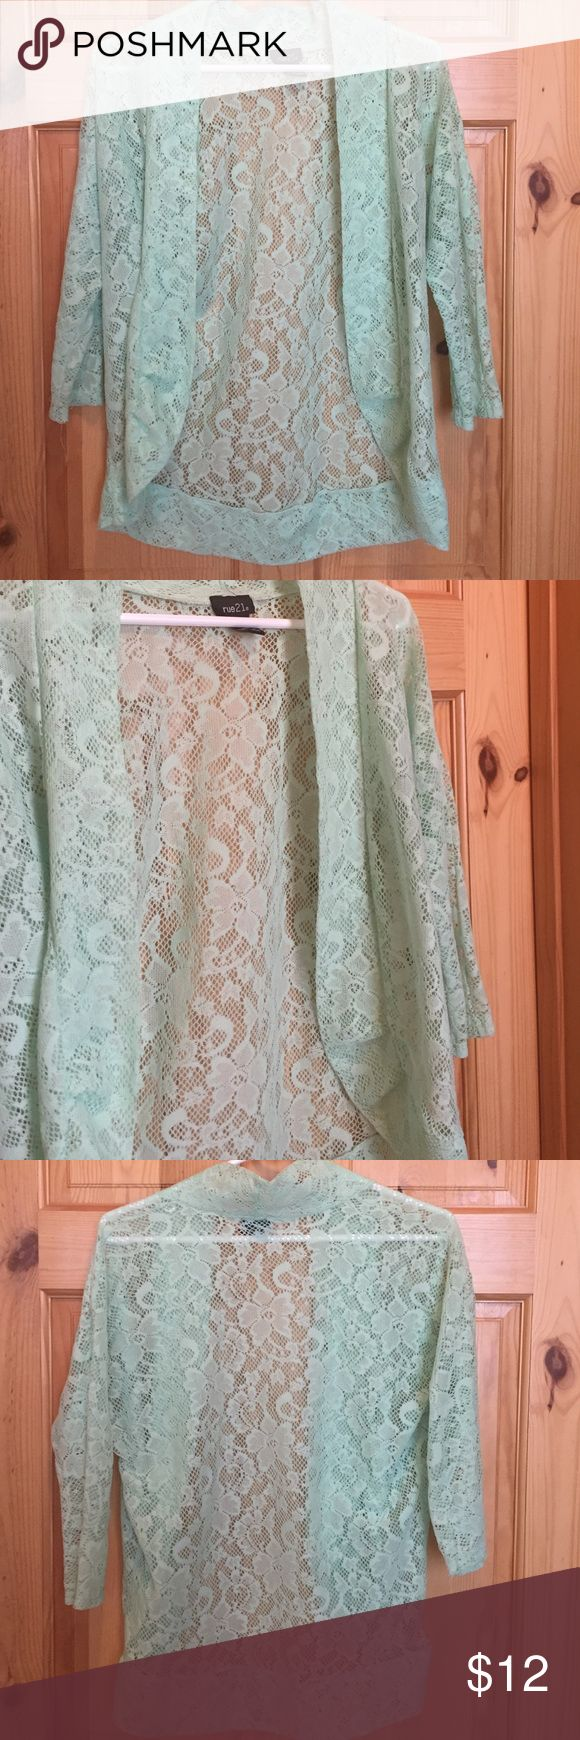 Beautiful lace shrug Really pretty teal lace shrug from Rue 21. I've only worn it once. Rue 21 Tops